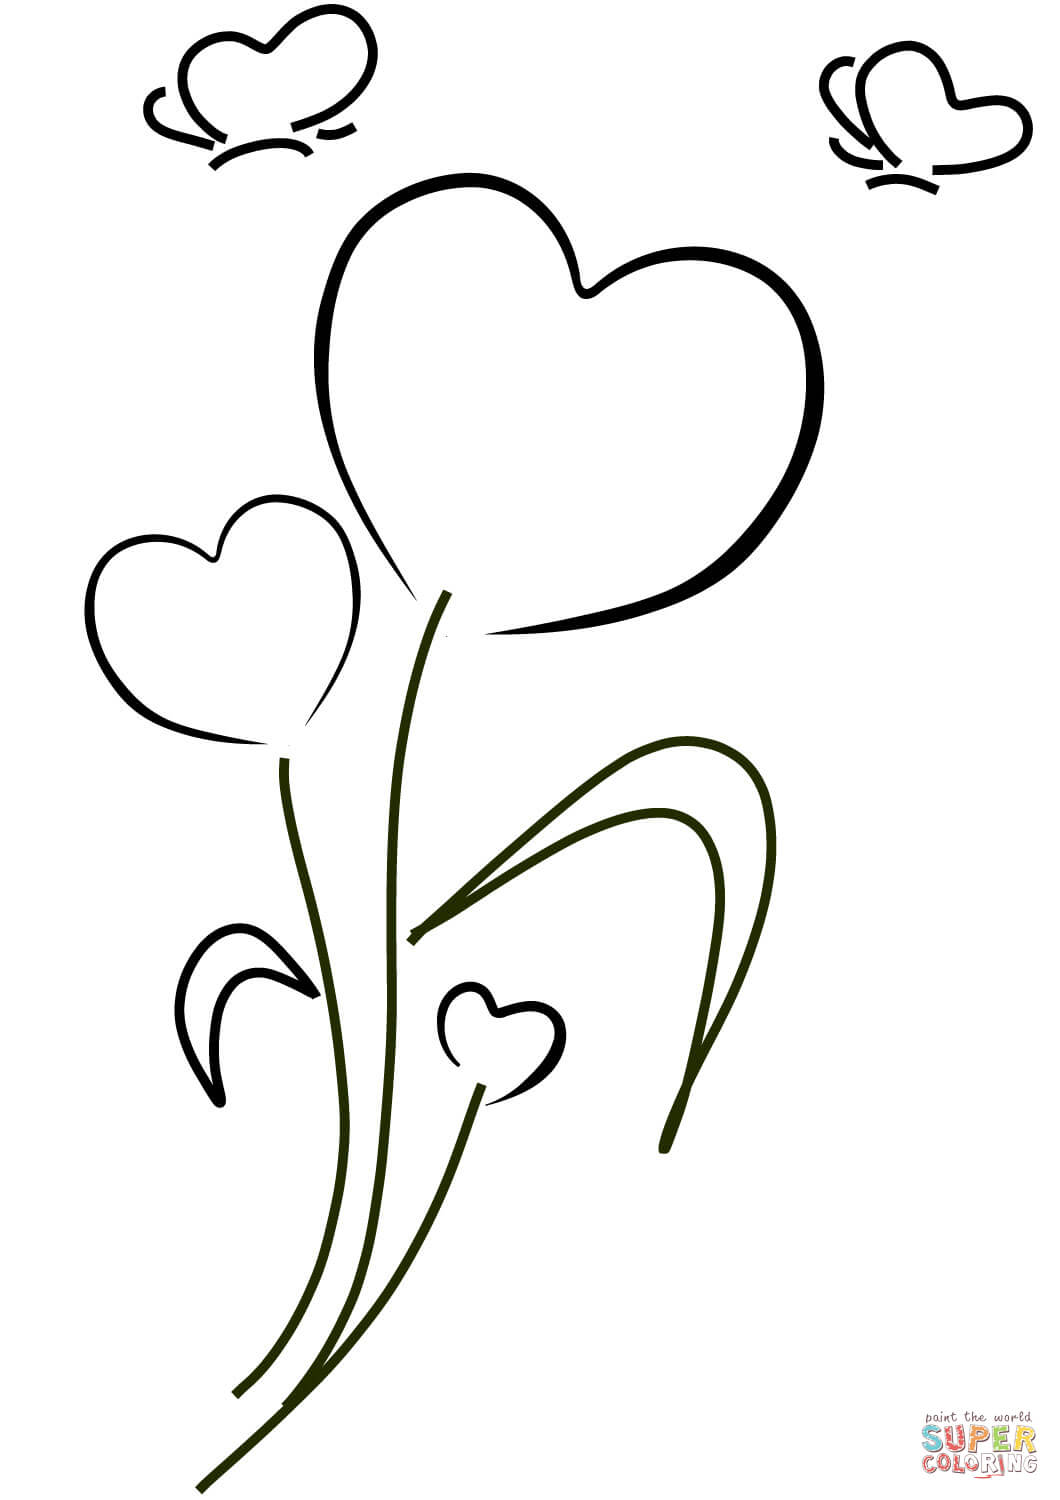 Heart and Flowers coloring page | Free Printable Coloring Pages | 1500x1060